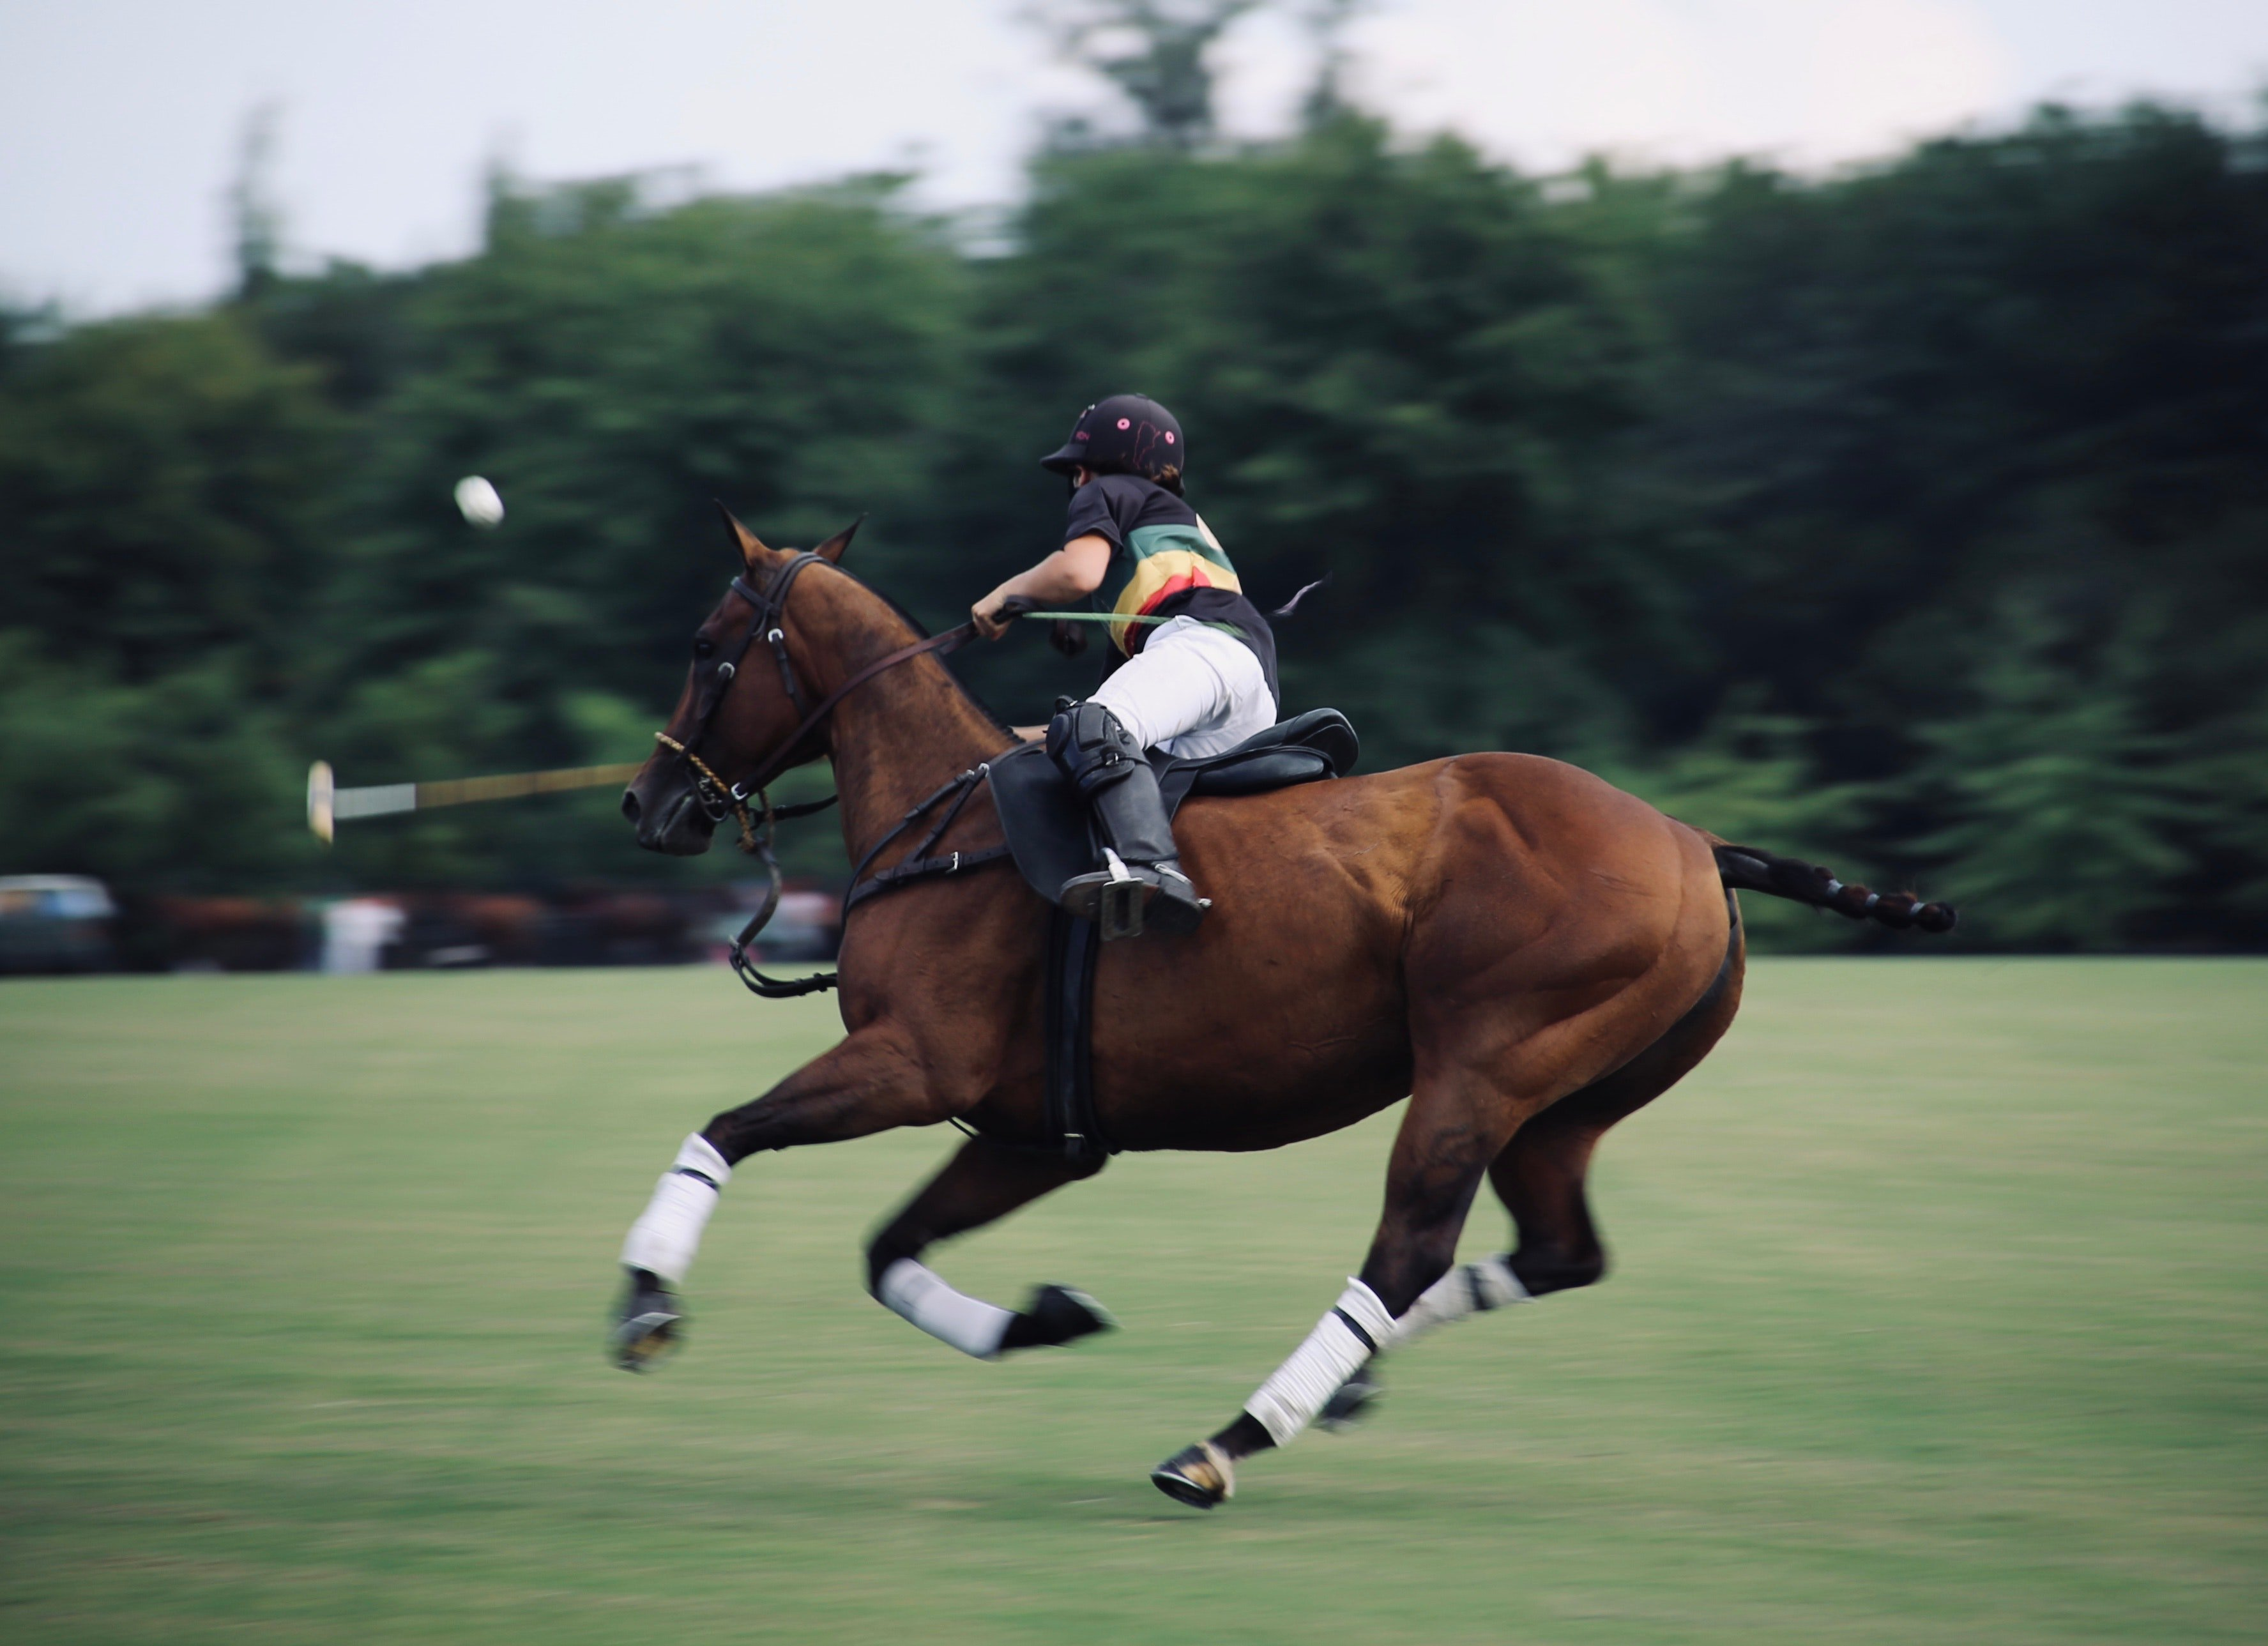 riding horse while playing golf